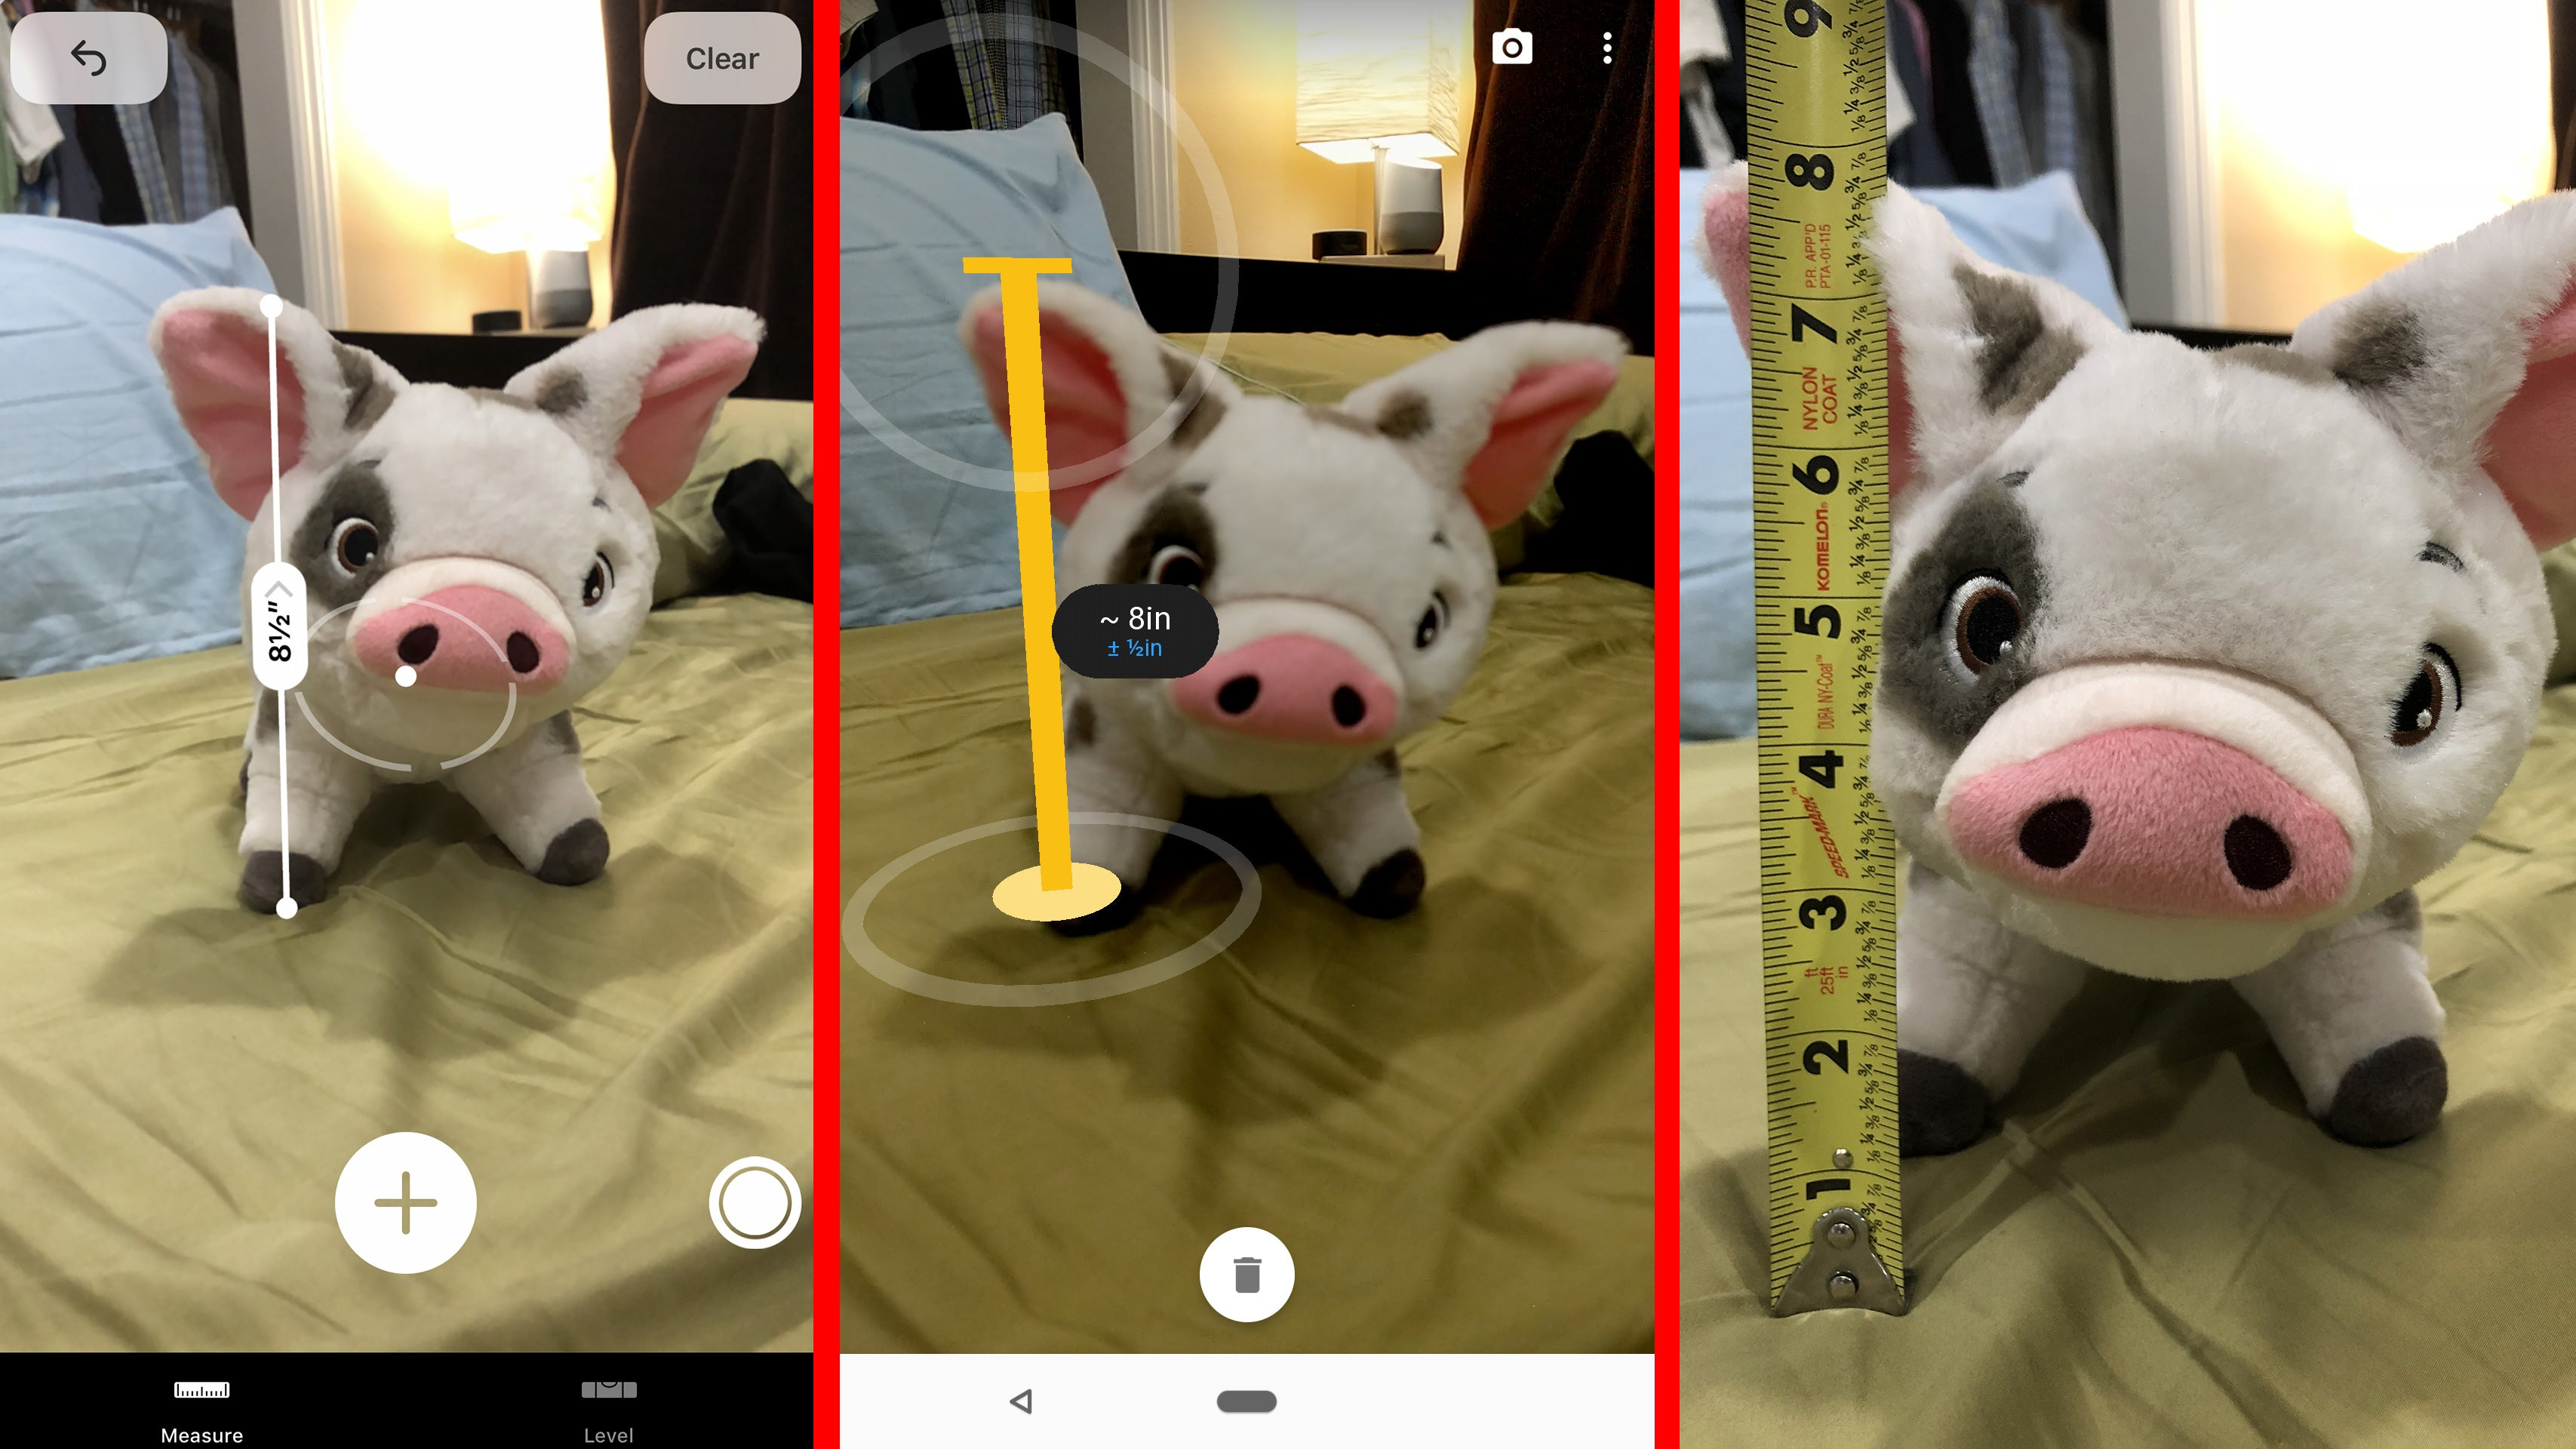 iOS AR Measuring App Vs. Android: Which Is More Accurate?